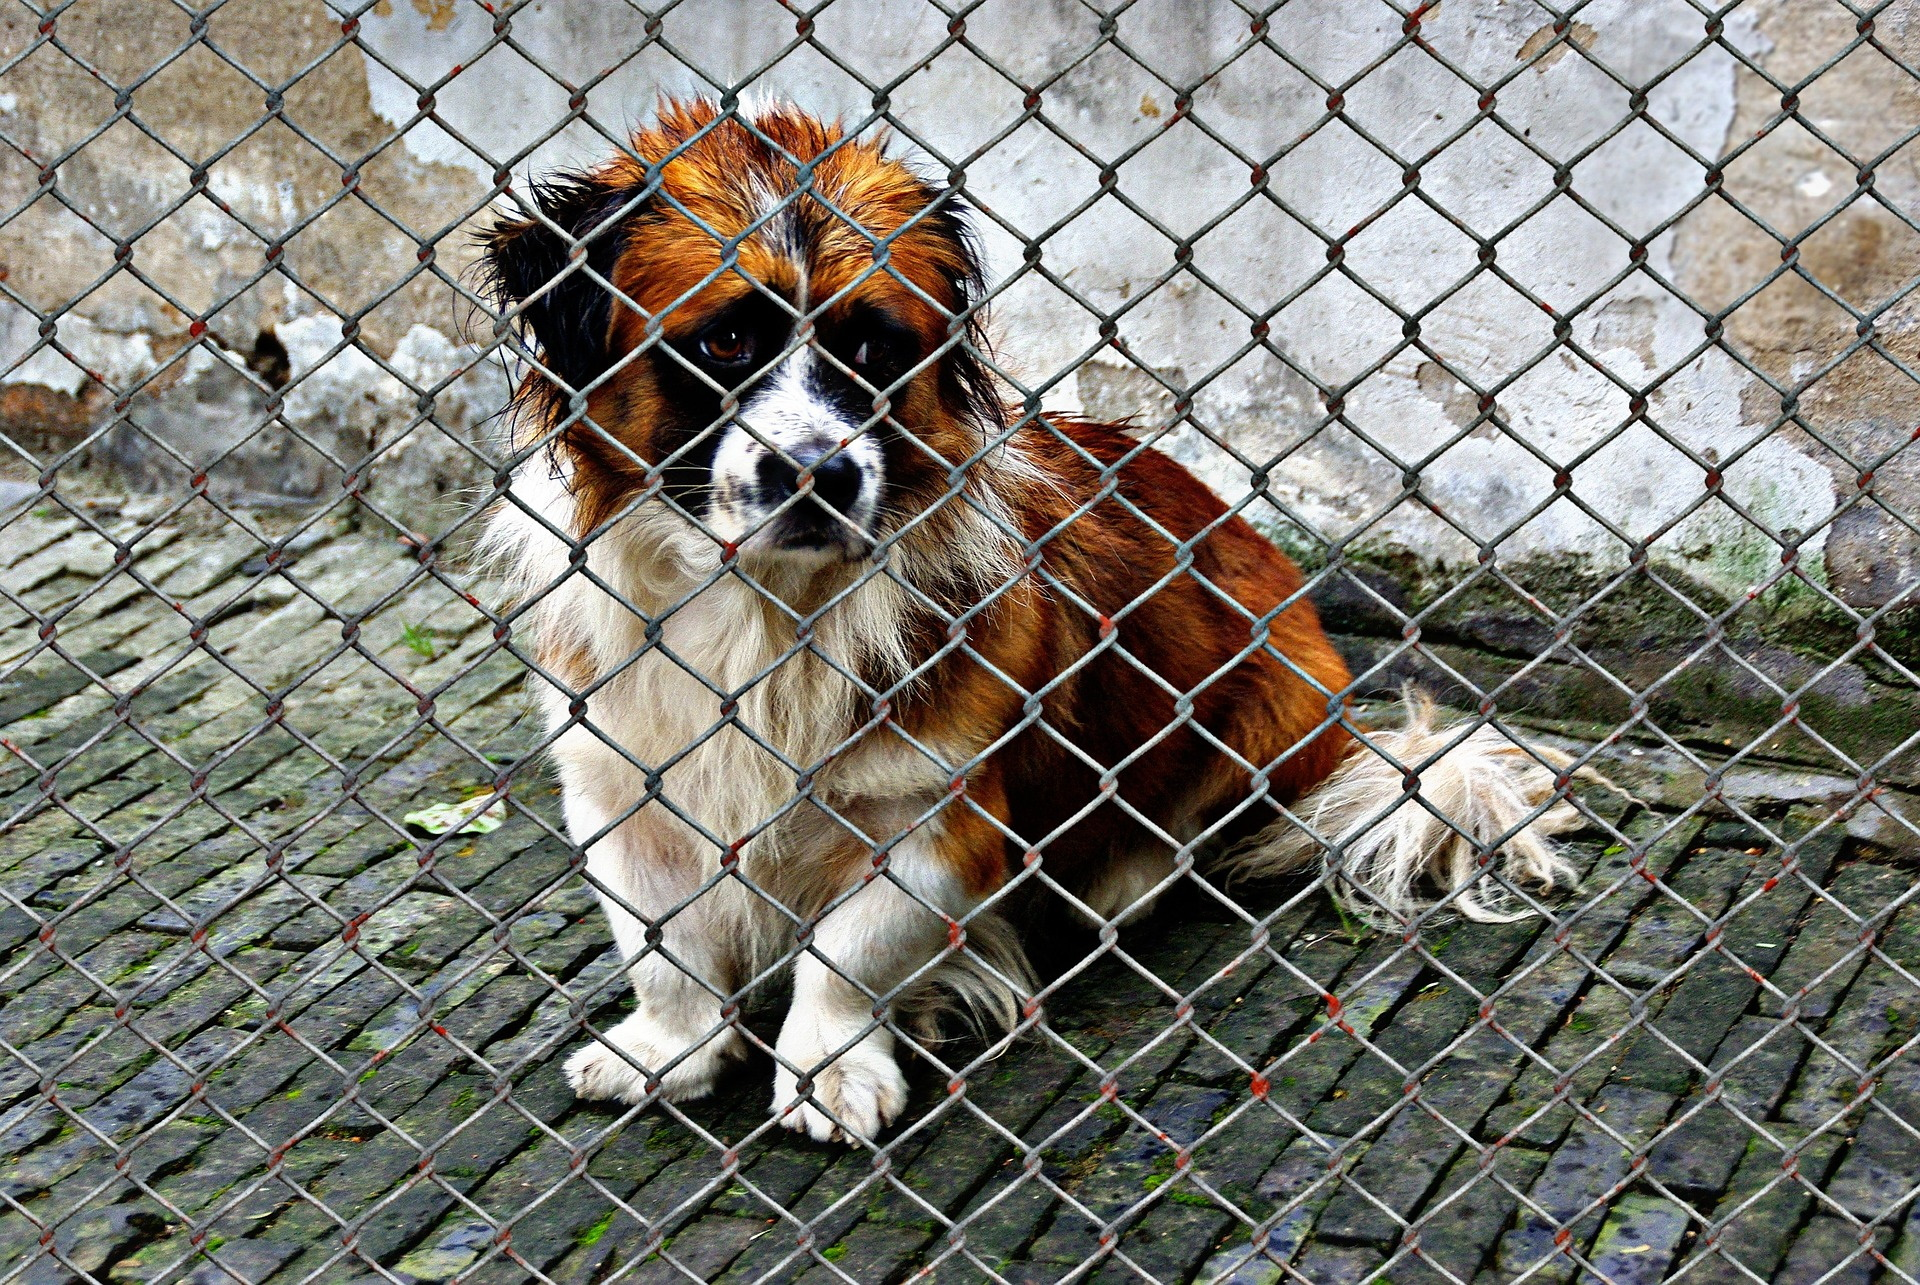 Adopt a dog and stop them looking sad behind the fencing like this dog does